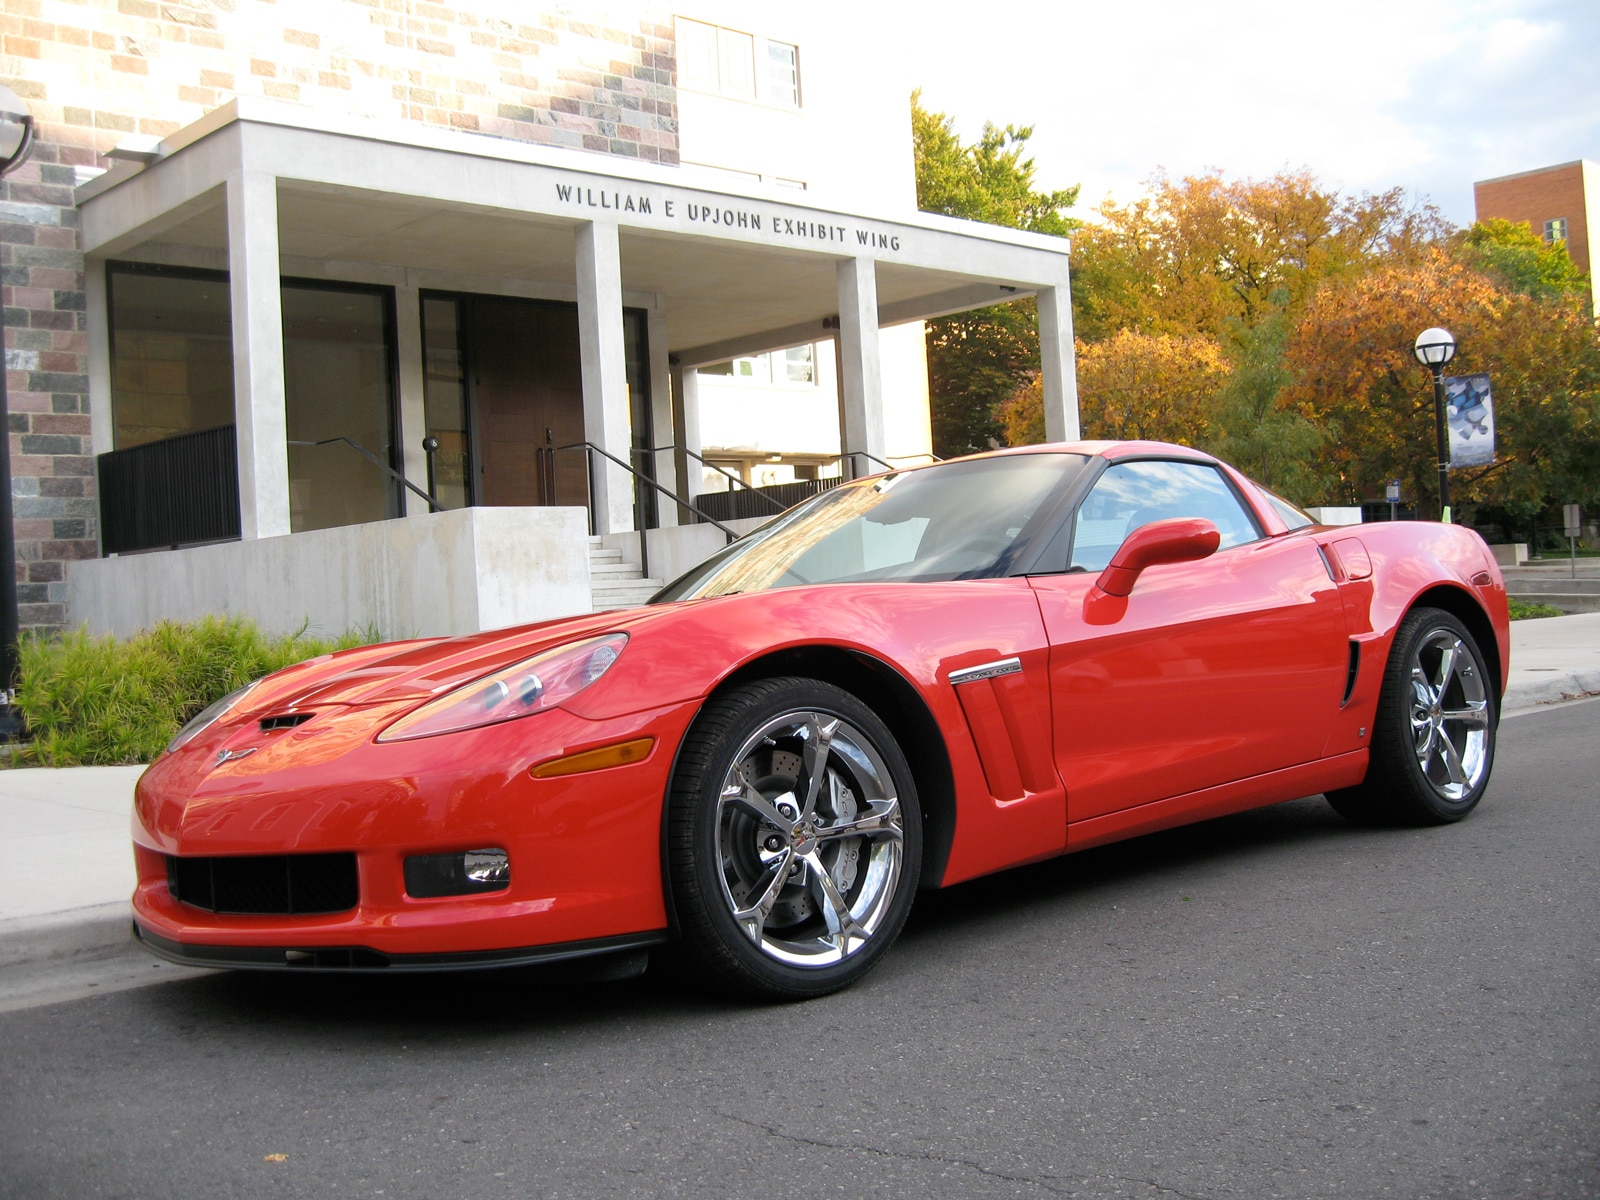 0911 01 Z 2010 Chevrolet Corvette Grand Sport Front Three Quarter View